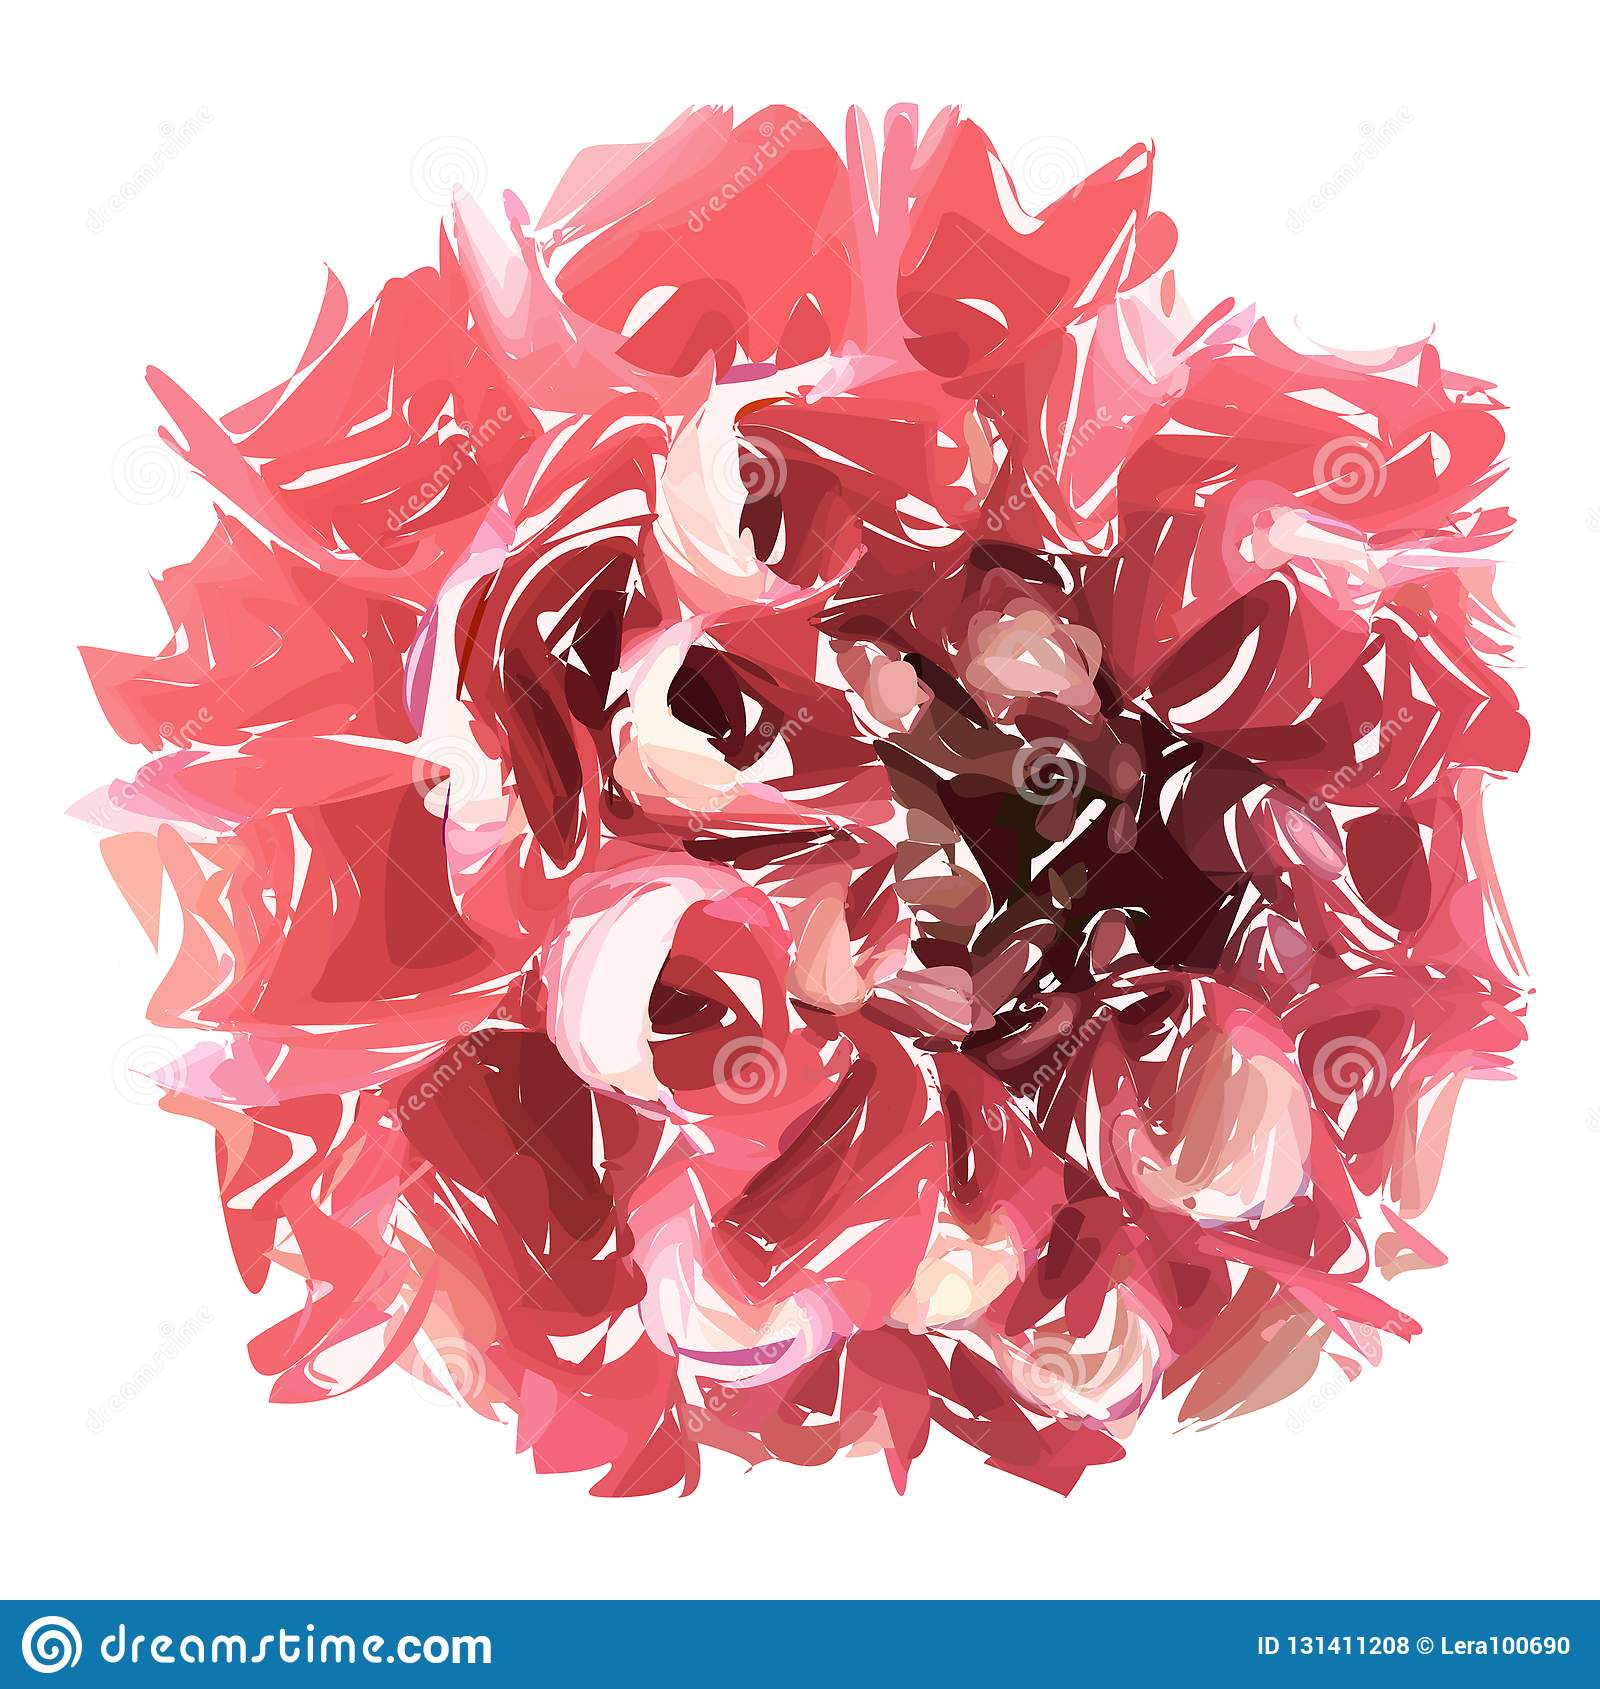 Abstract flower, pink chrysanthemum isolated on white background.